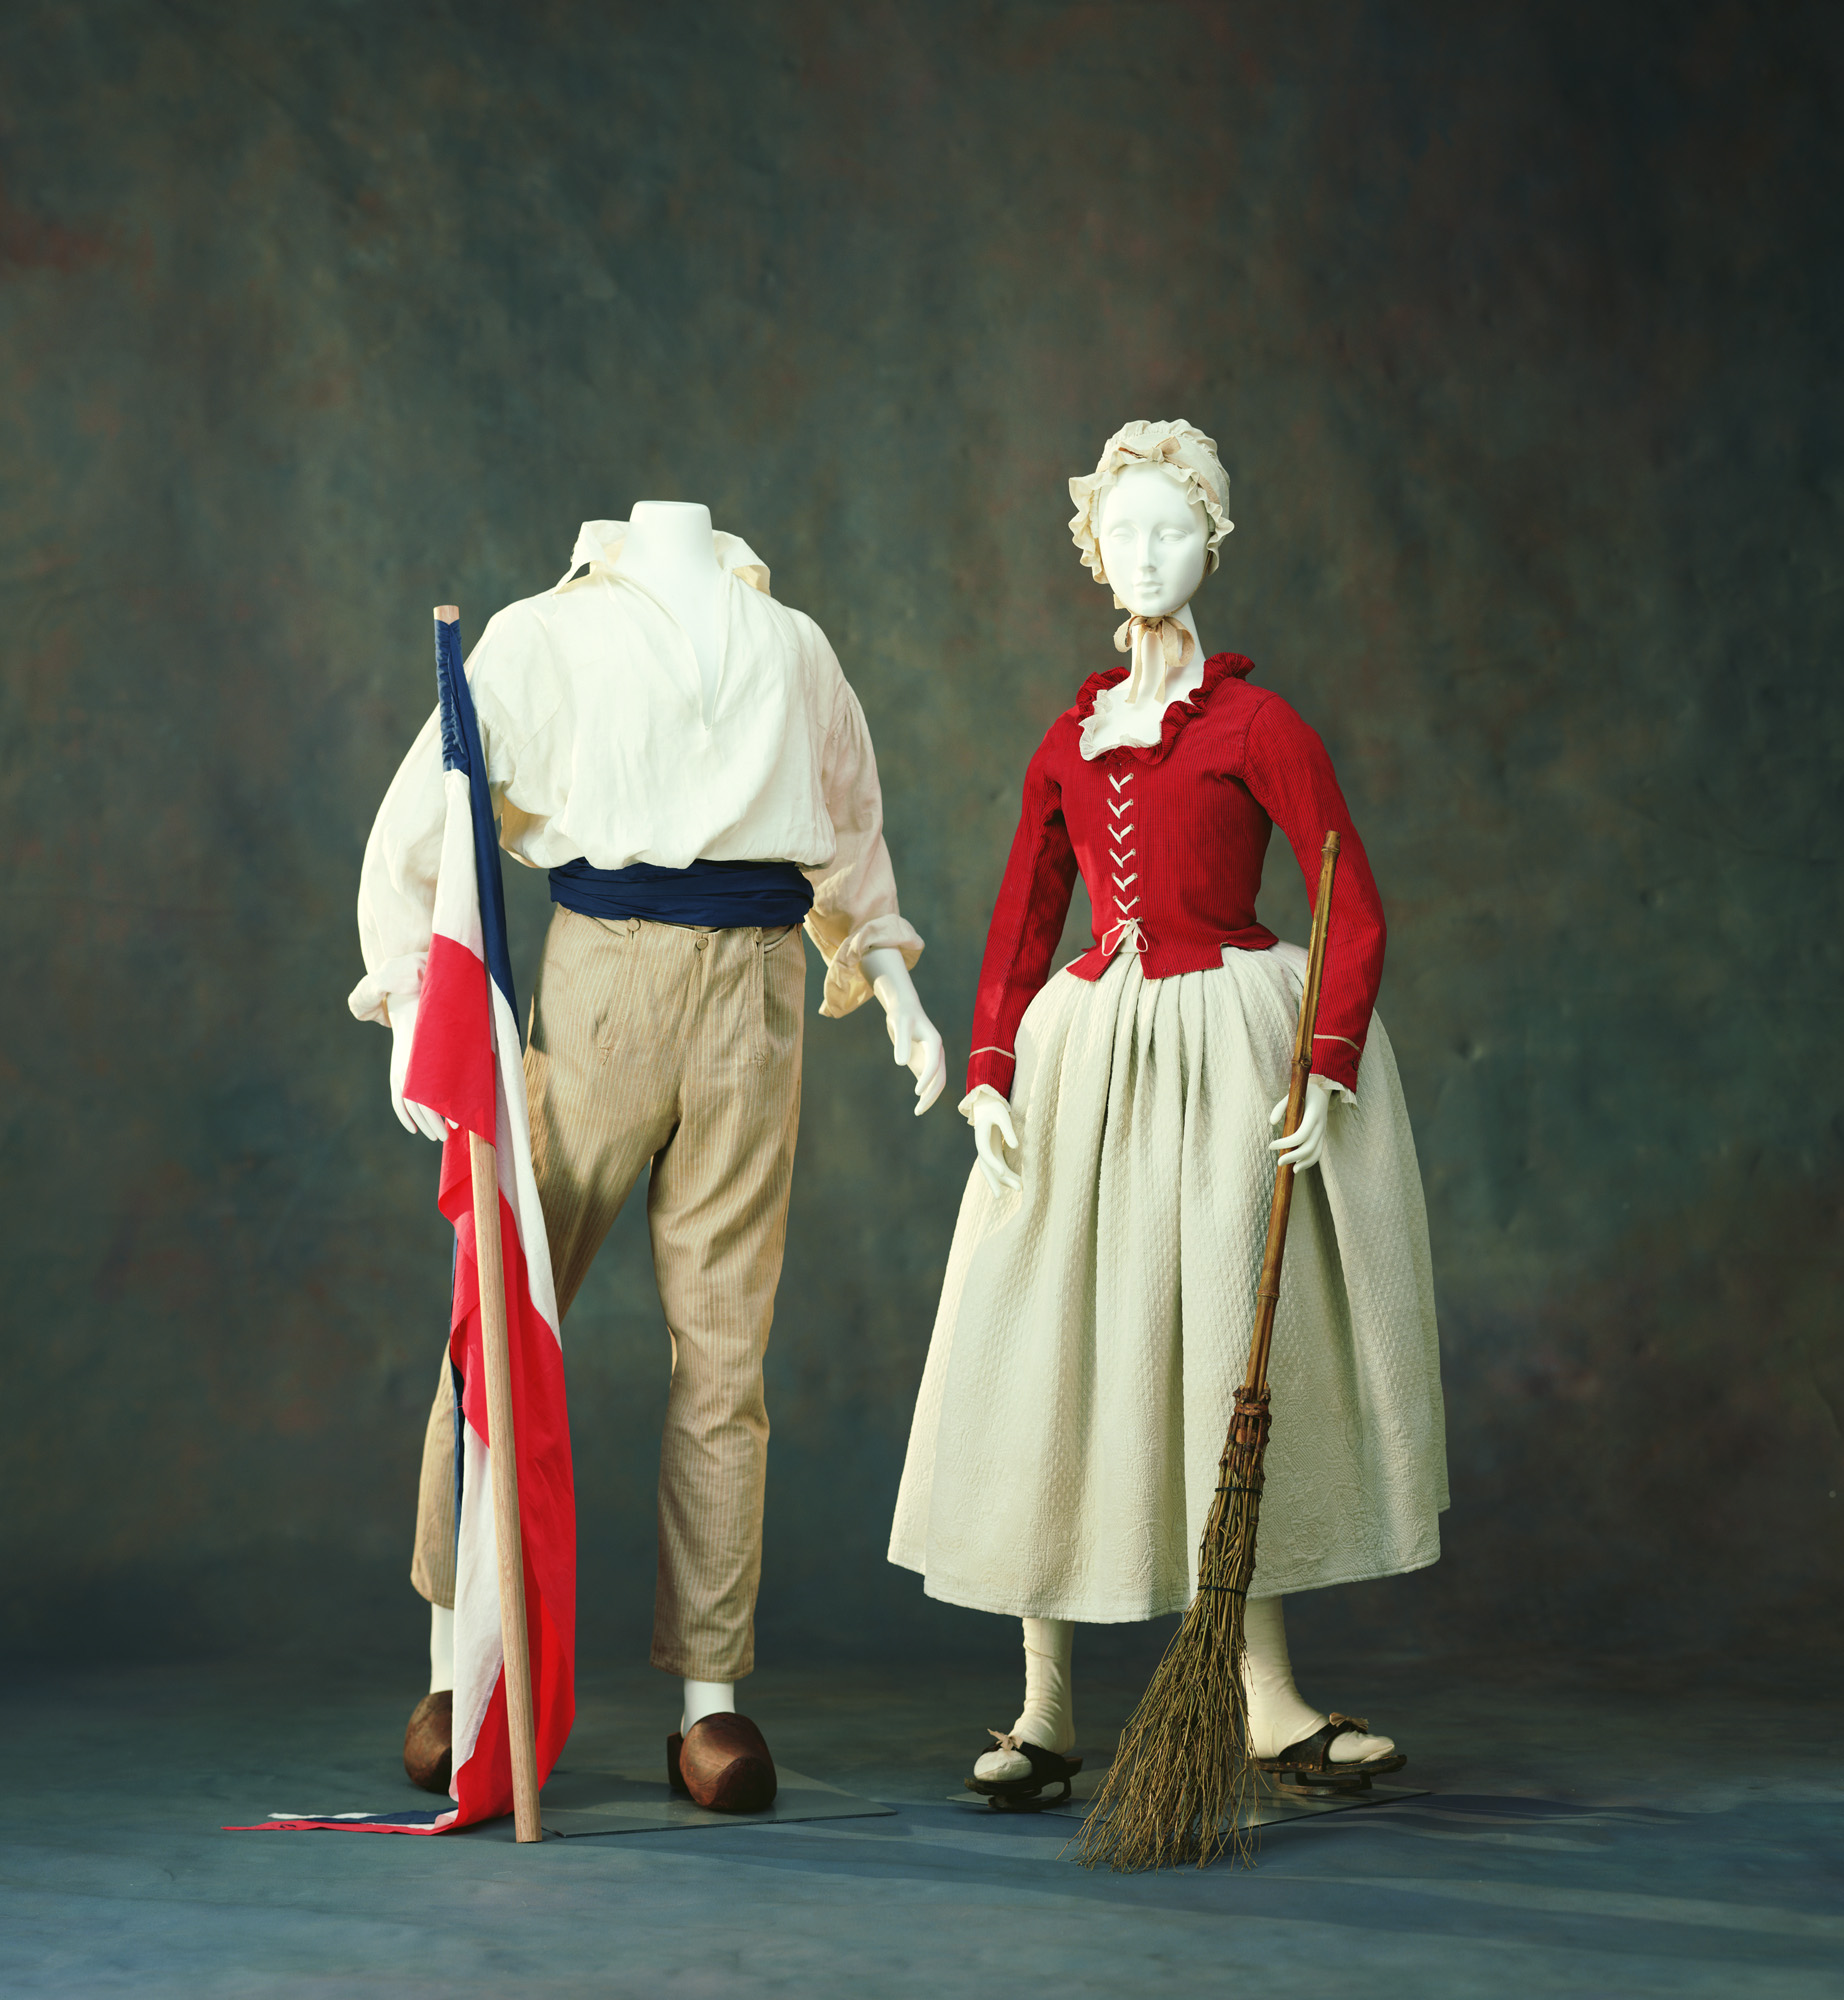 Man's Shirt, Trousers [Left] Jacket, Petticoat [Right]